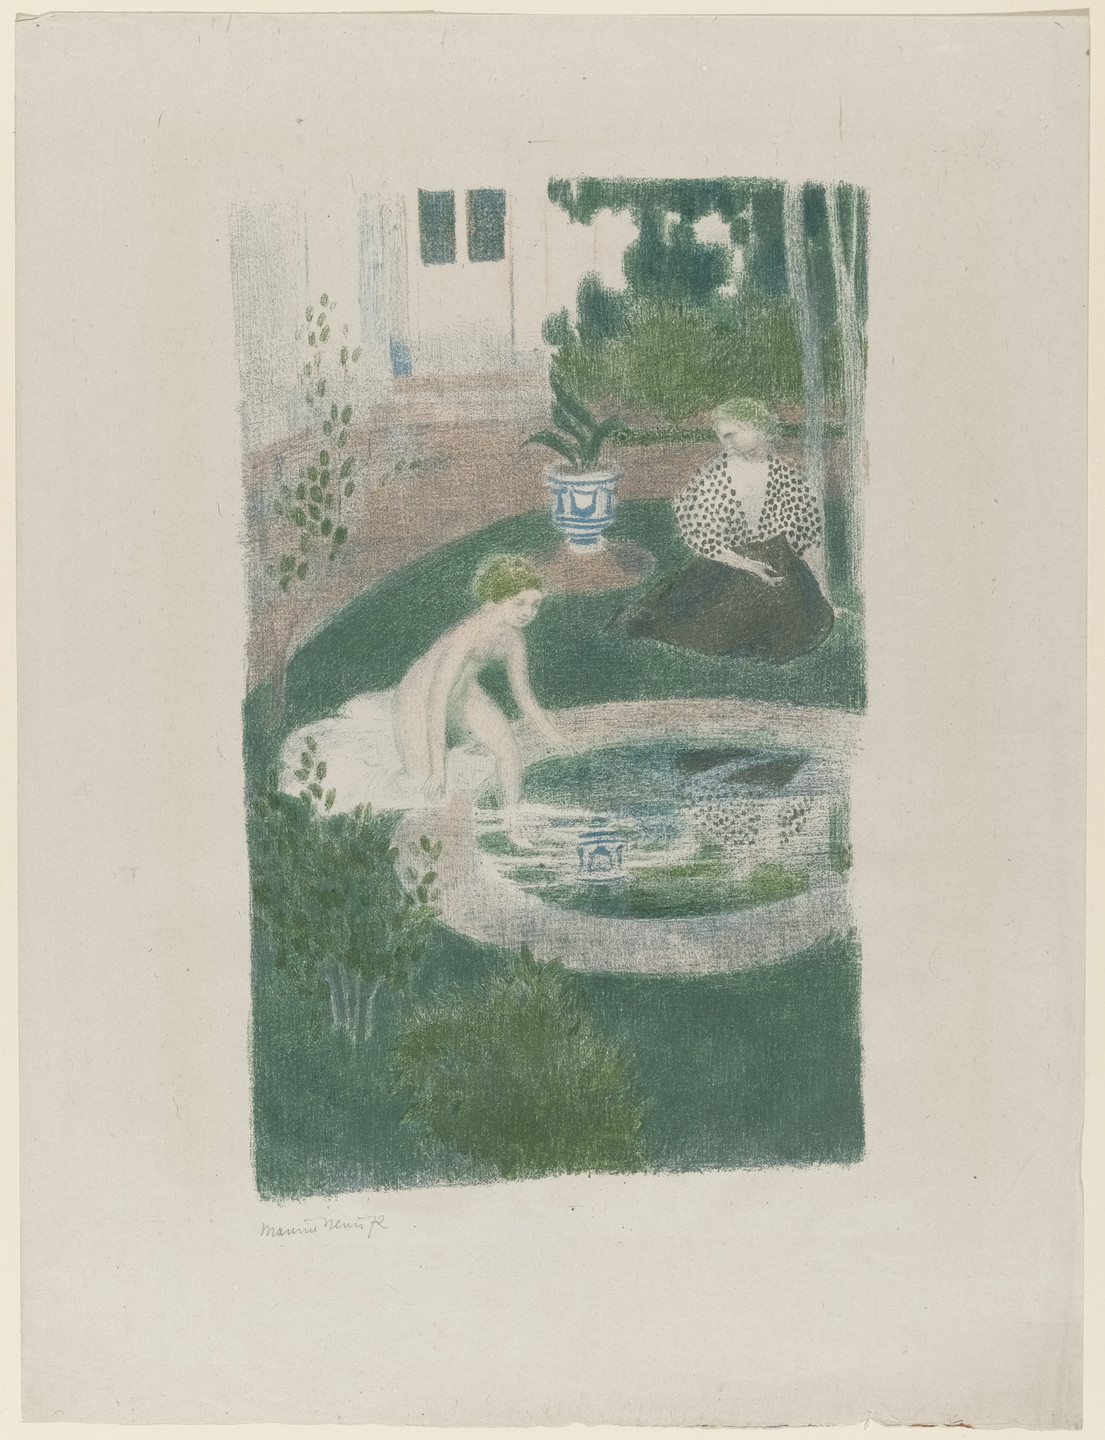 Maurice Denis. The Reflection in the Fountain (Le Reflet dans la fontaine) from the portfolio The Album of Original Prints from the Vollard Gallery (L'Album d'estampes orginales de la Galerie Vollard). 1897